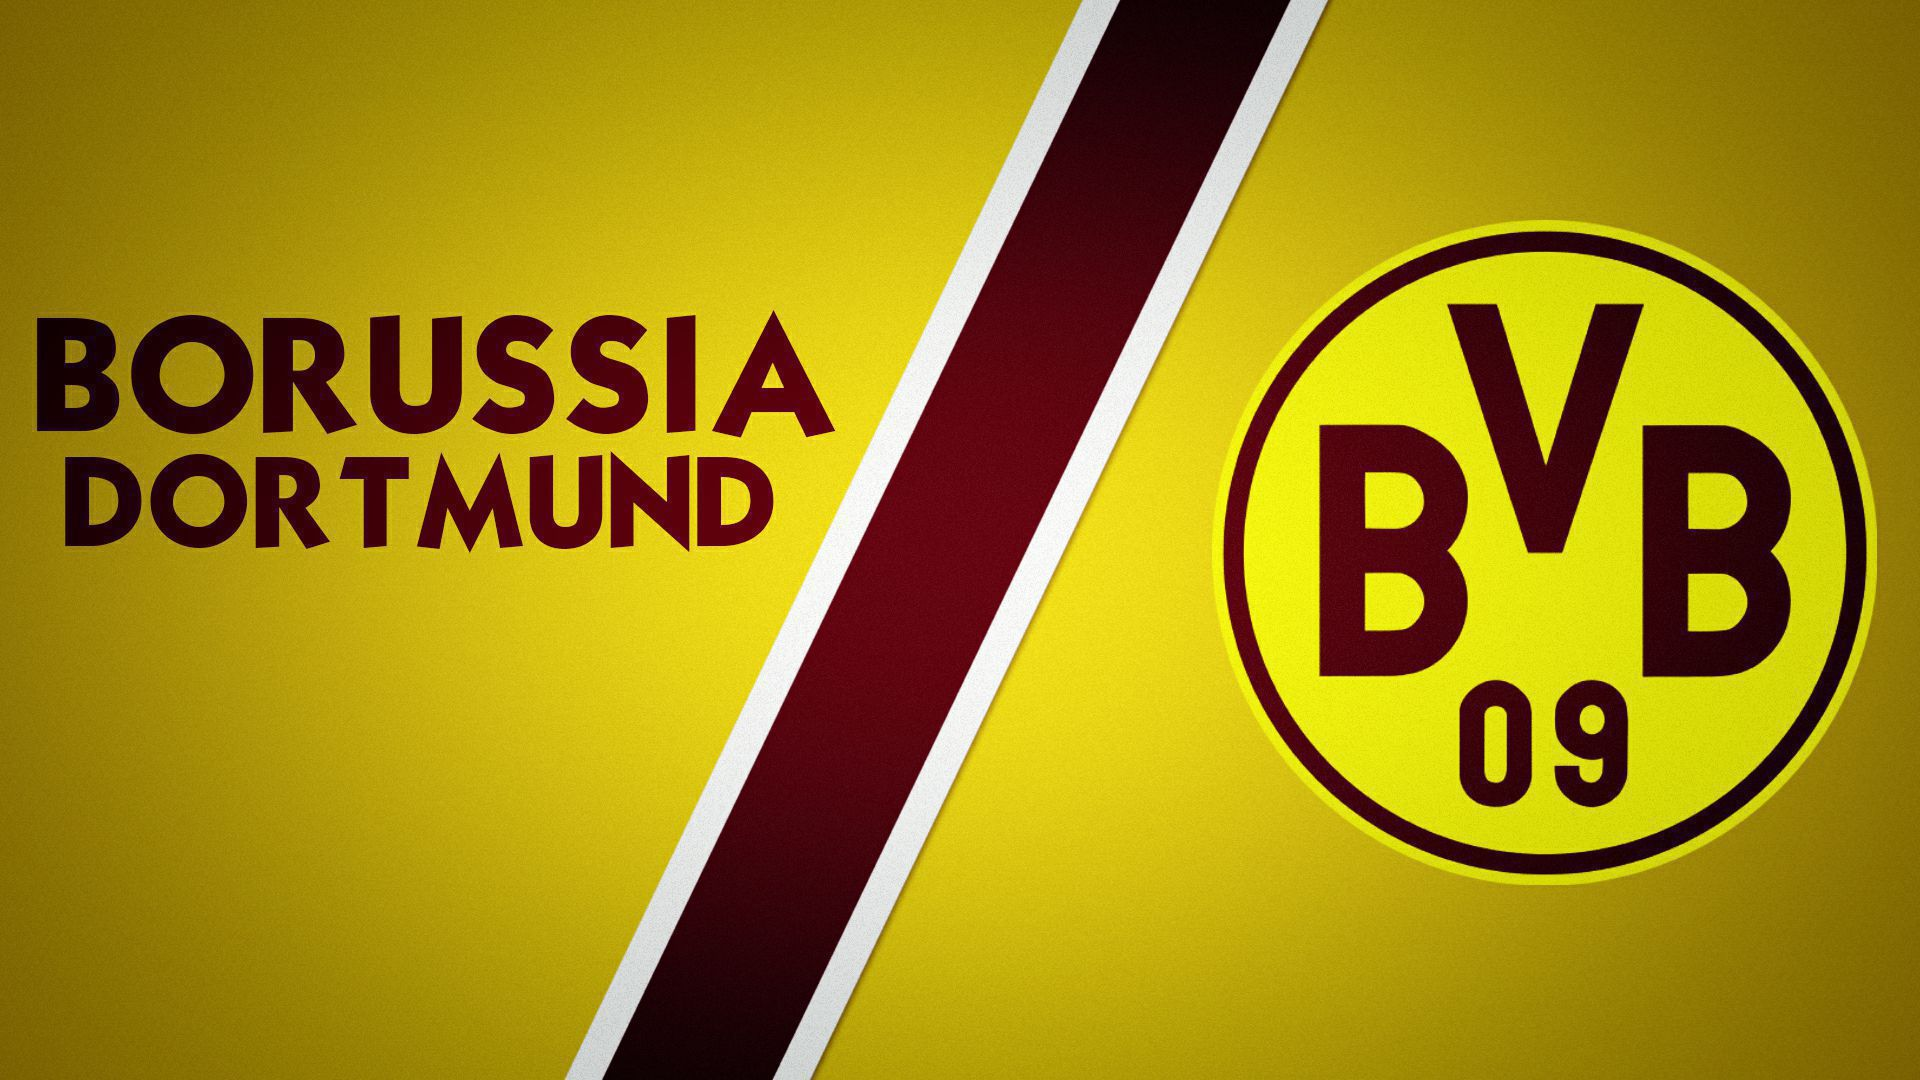 Borussia Dortmund High Quality Wallpapers